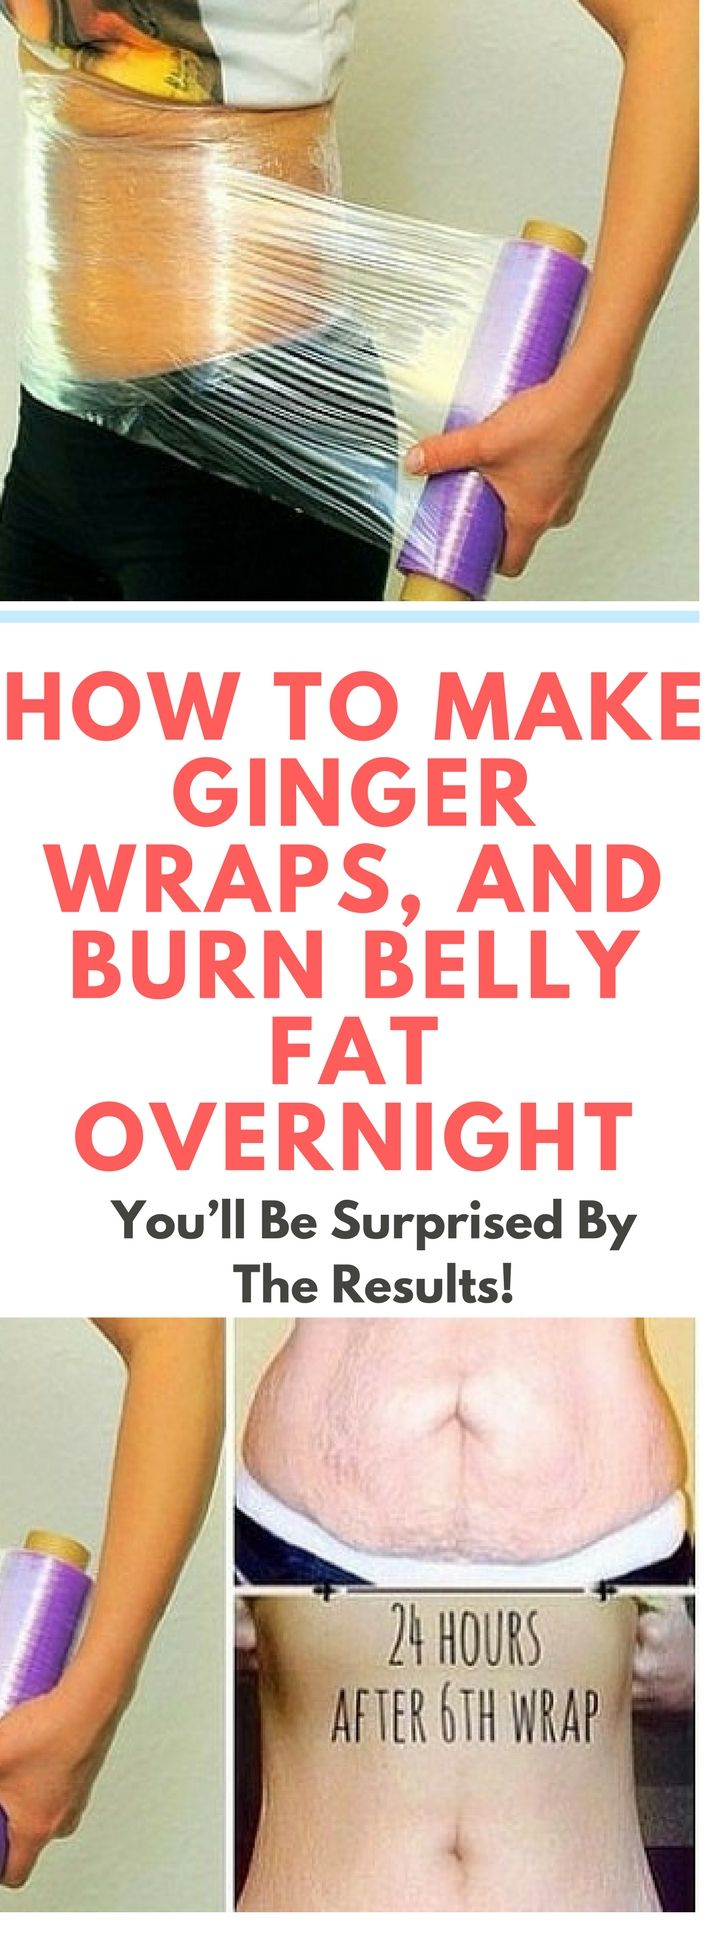 what can i take to lose weight overnight